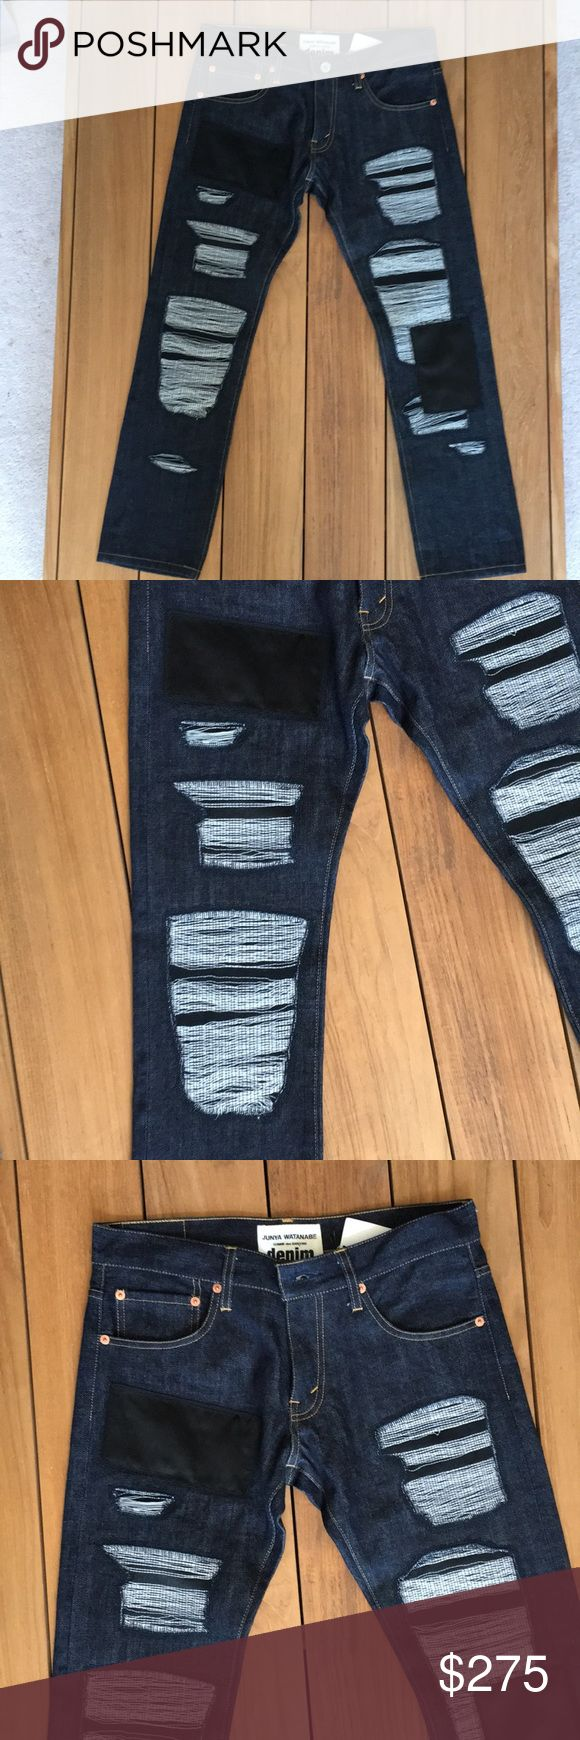 NWT Junya Watanabe COMME des GARCONS denim Small Zoom for details; patchwork design  Cropped Jeans Innovative contrasting texture sought after design  Pant size: 31/32 cropped length Made in Japan Junya Watanabe Comme des Garcons Jeans